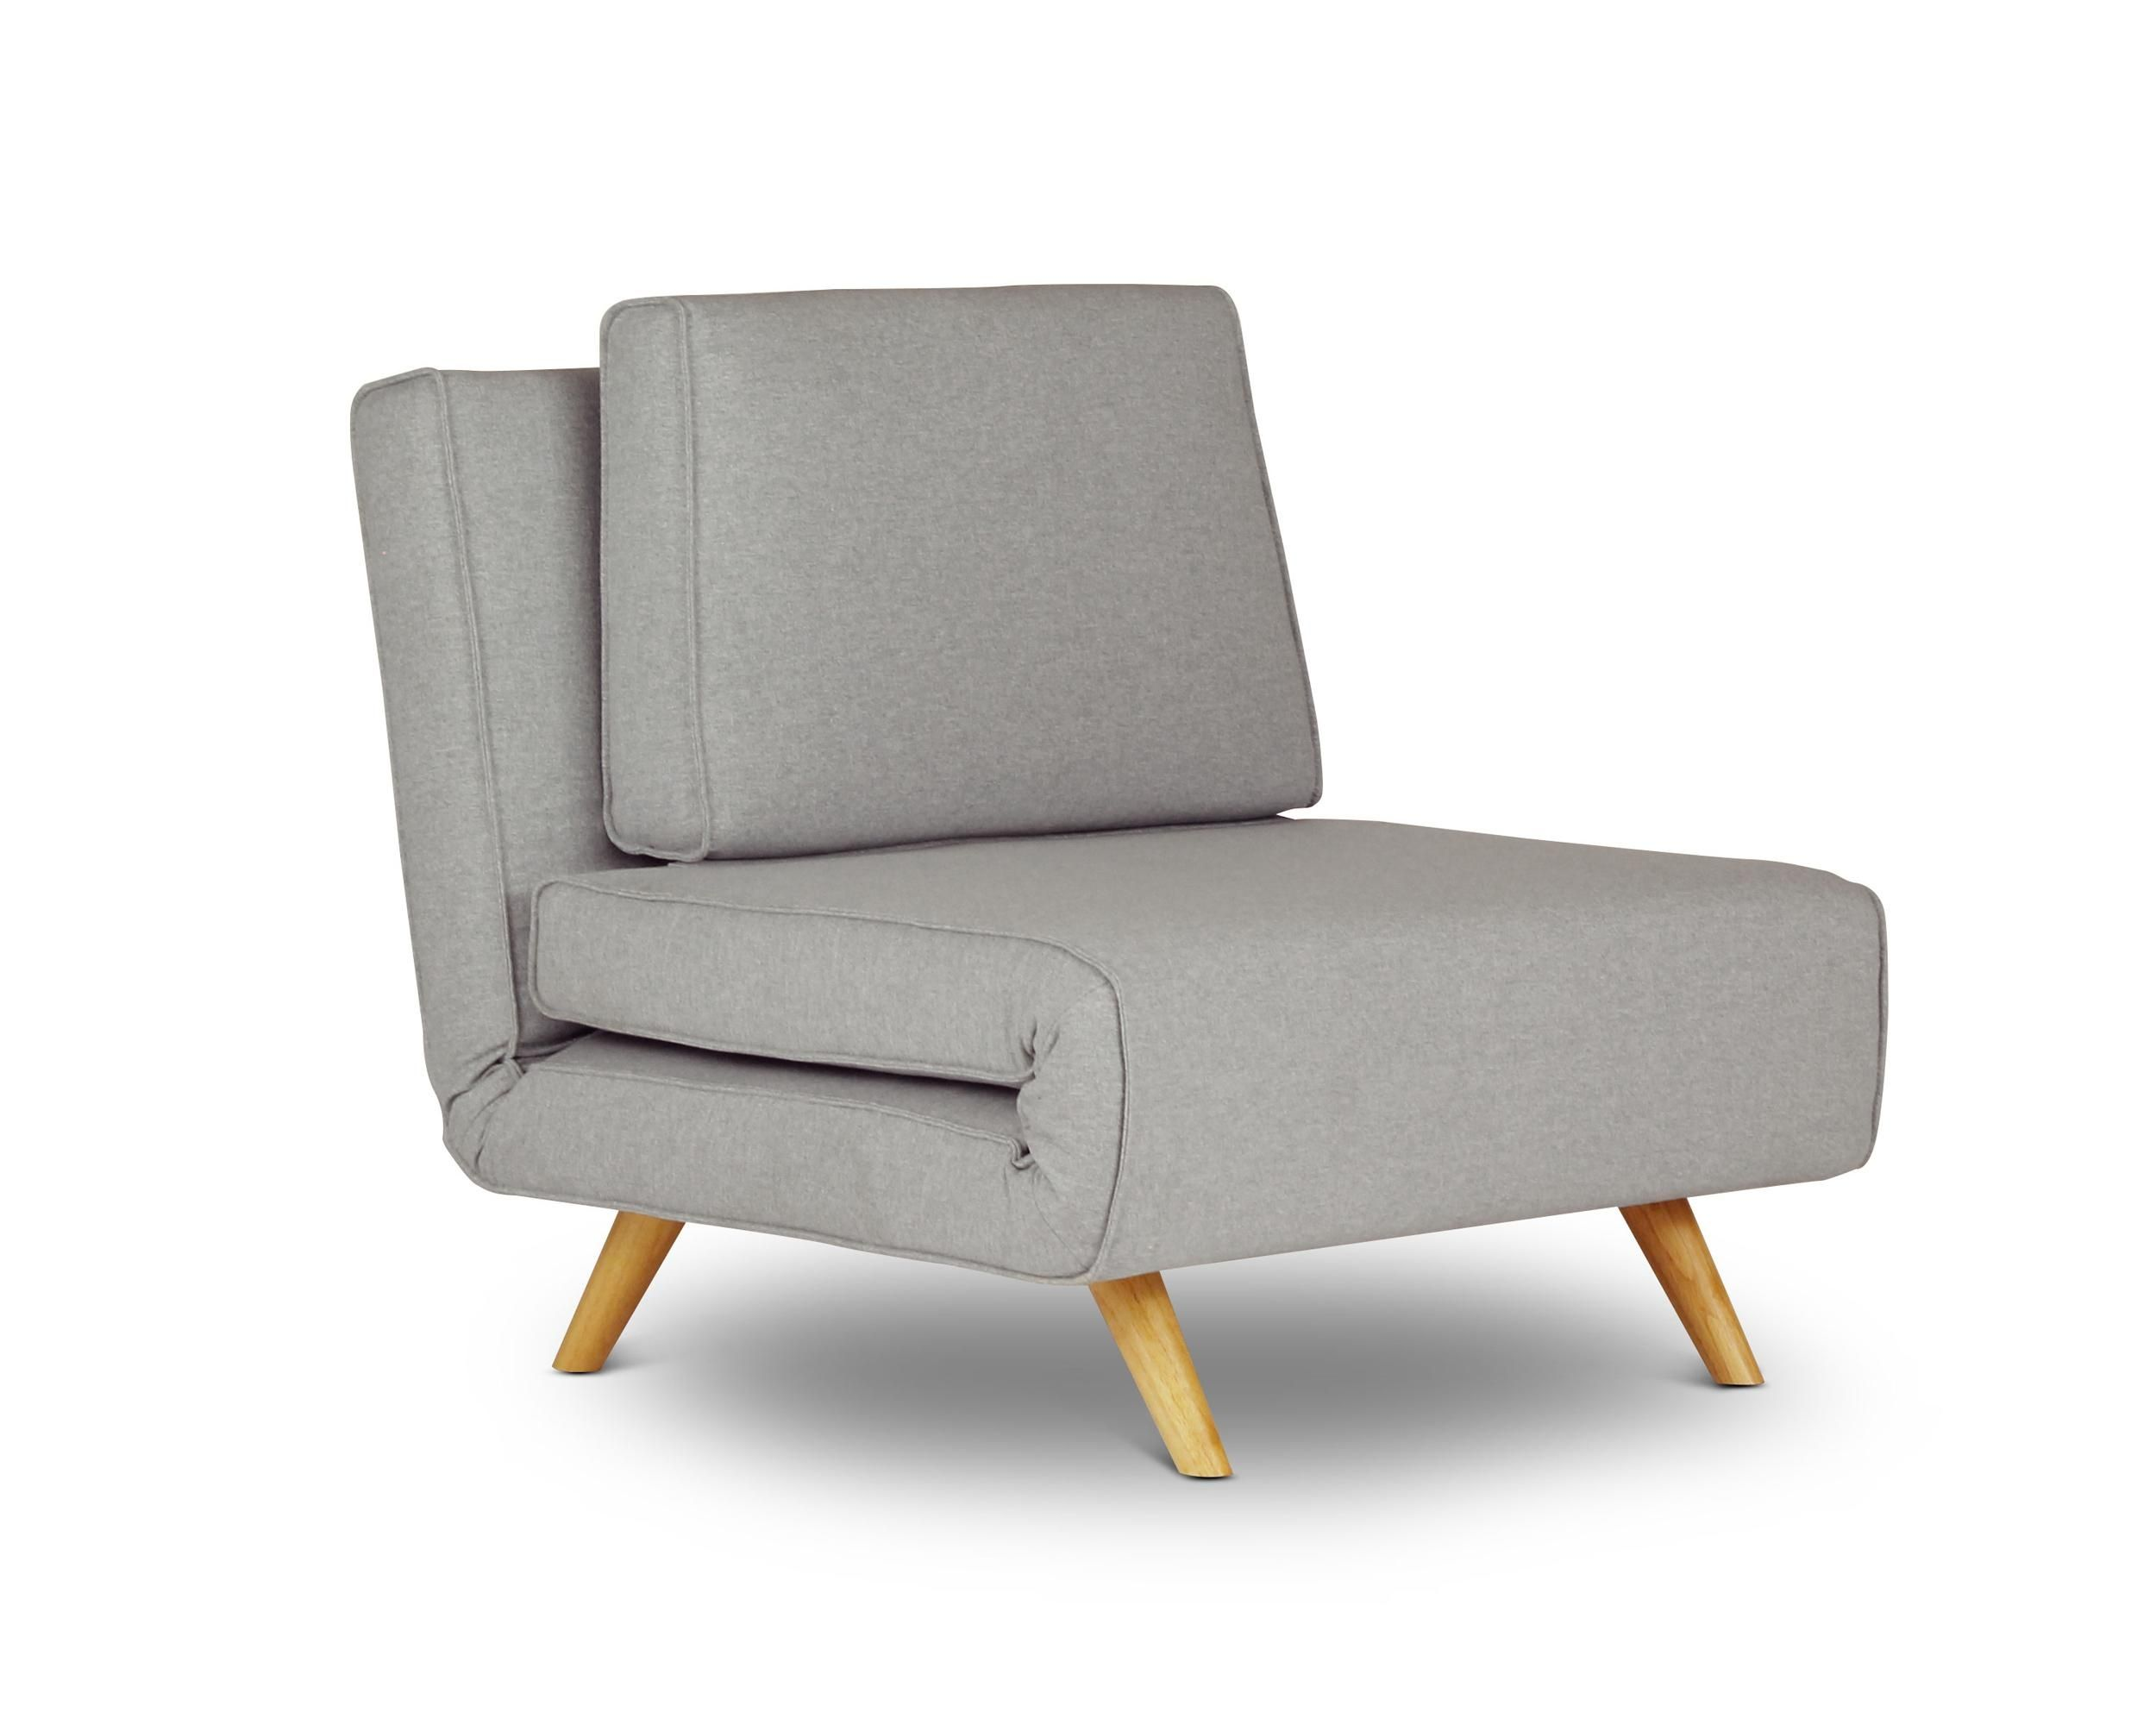 Single Chair Sofa Beds Flexsteel Rv Sofas My Apartment Pinterest Bed Https Tany Net P